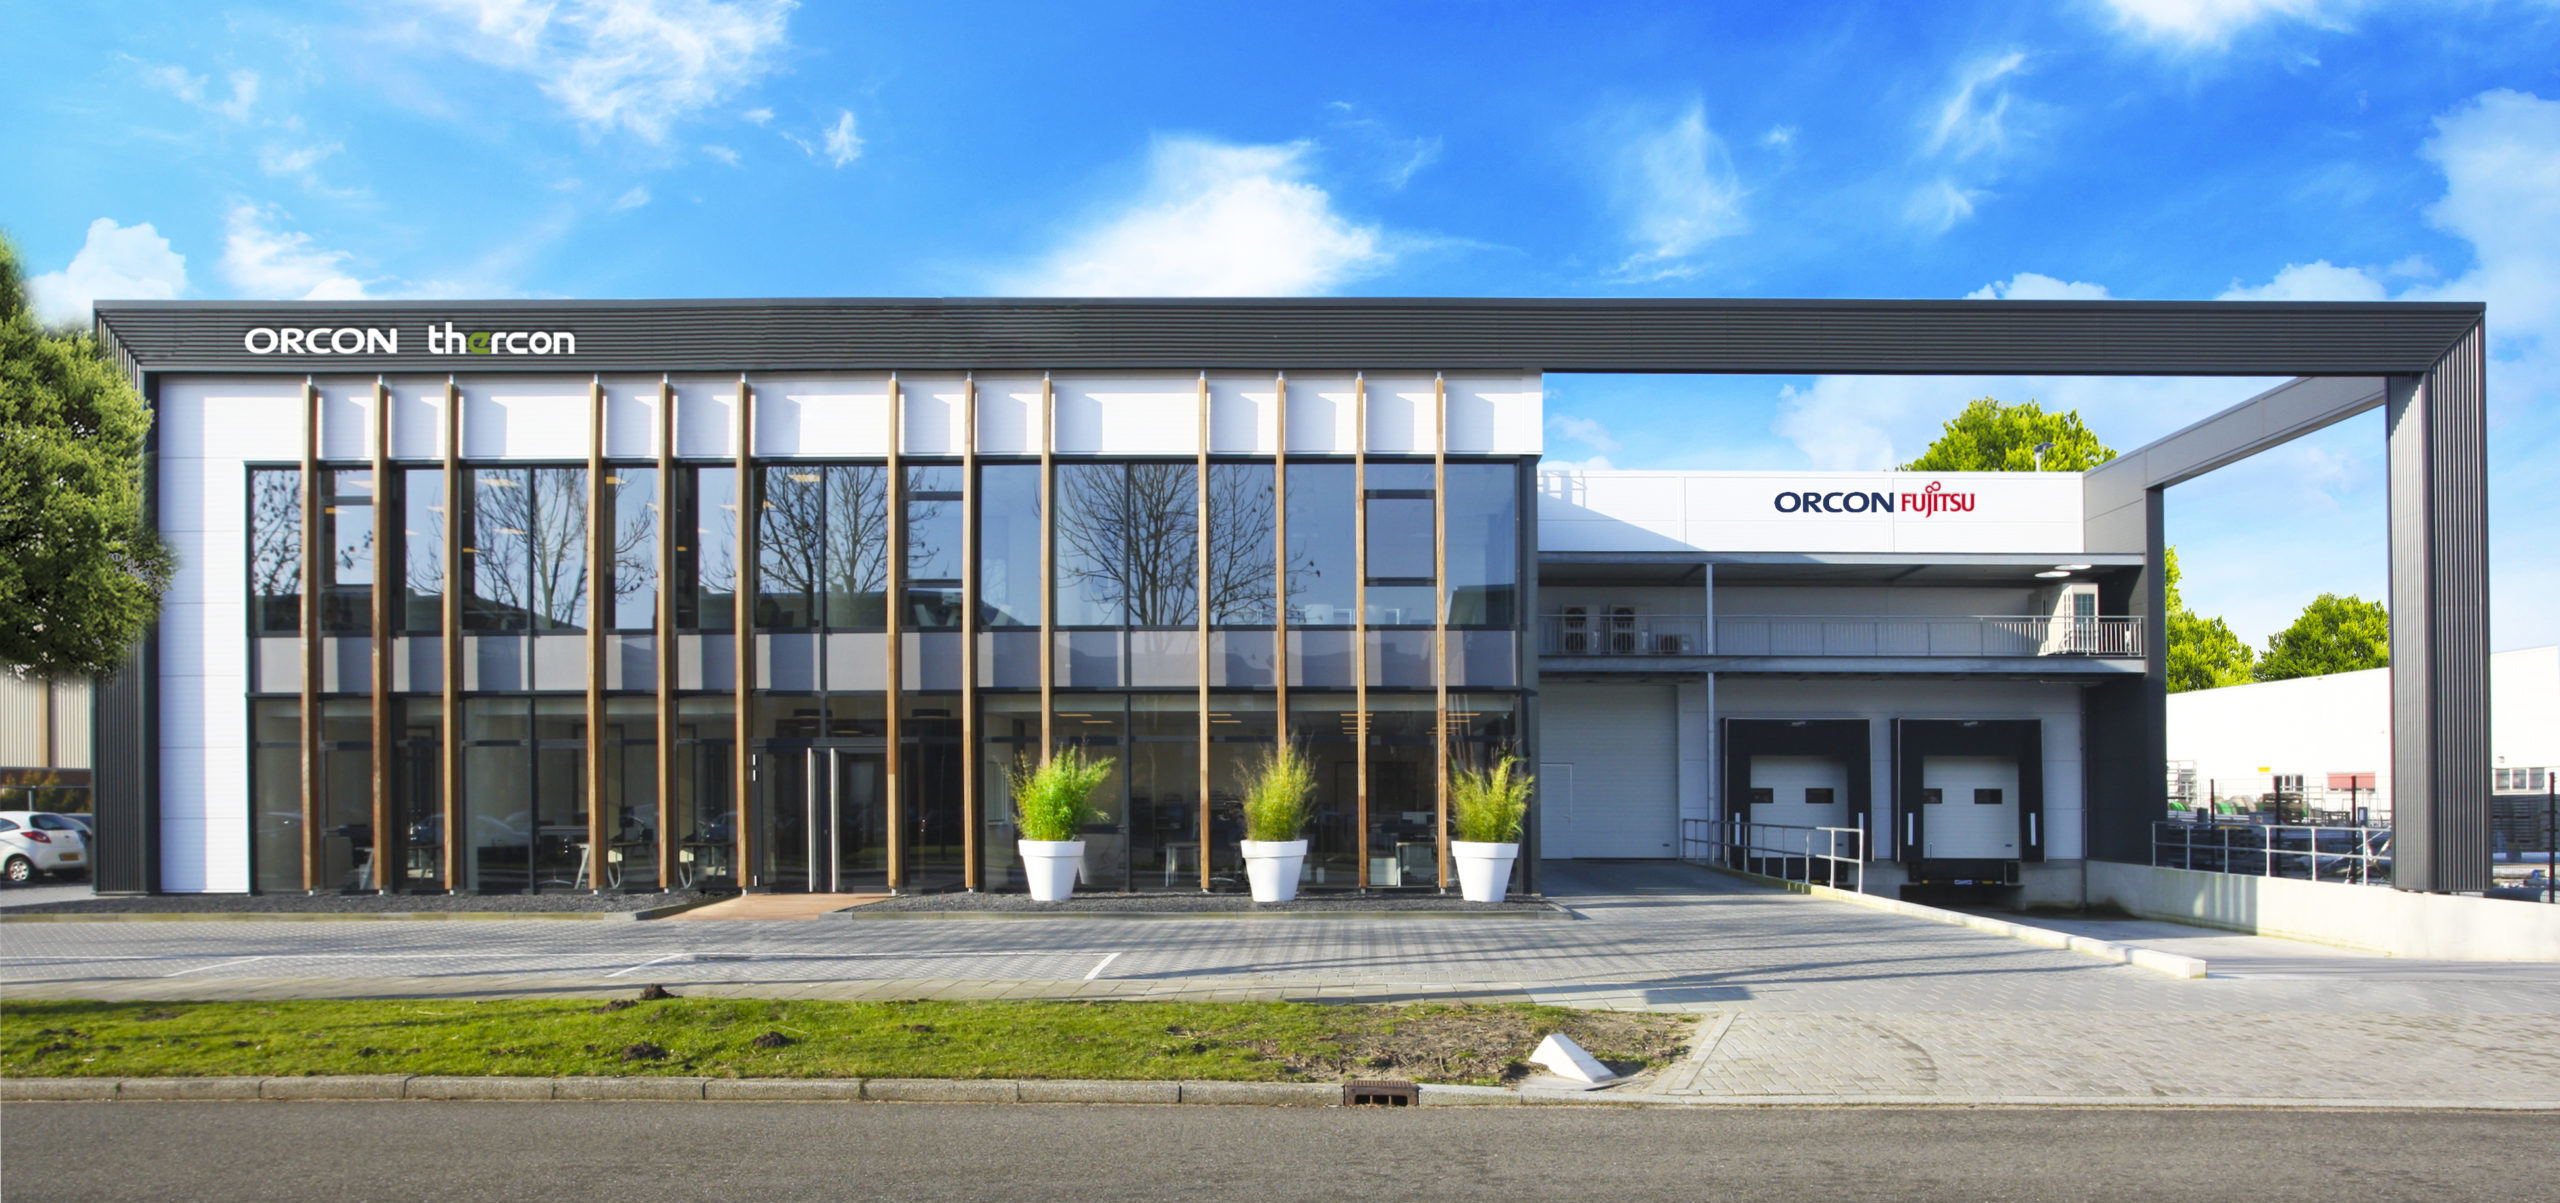 Orcon / Thercon BV wordt Groupe Atlantic Nederland